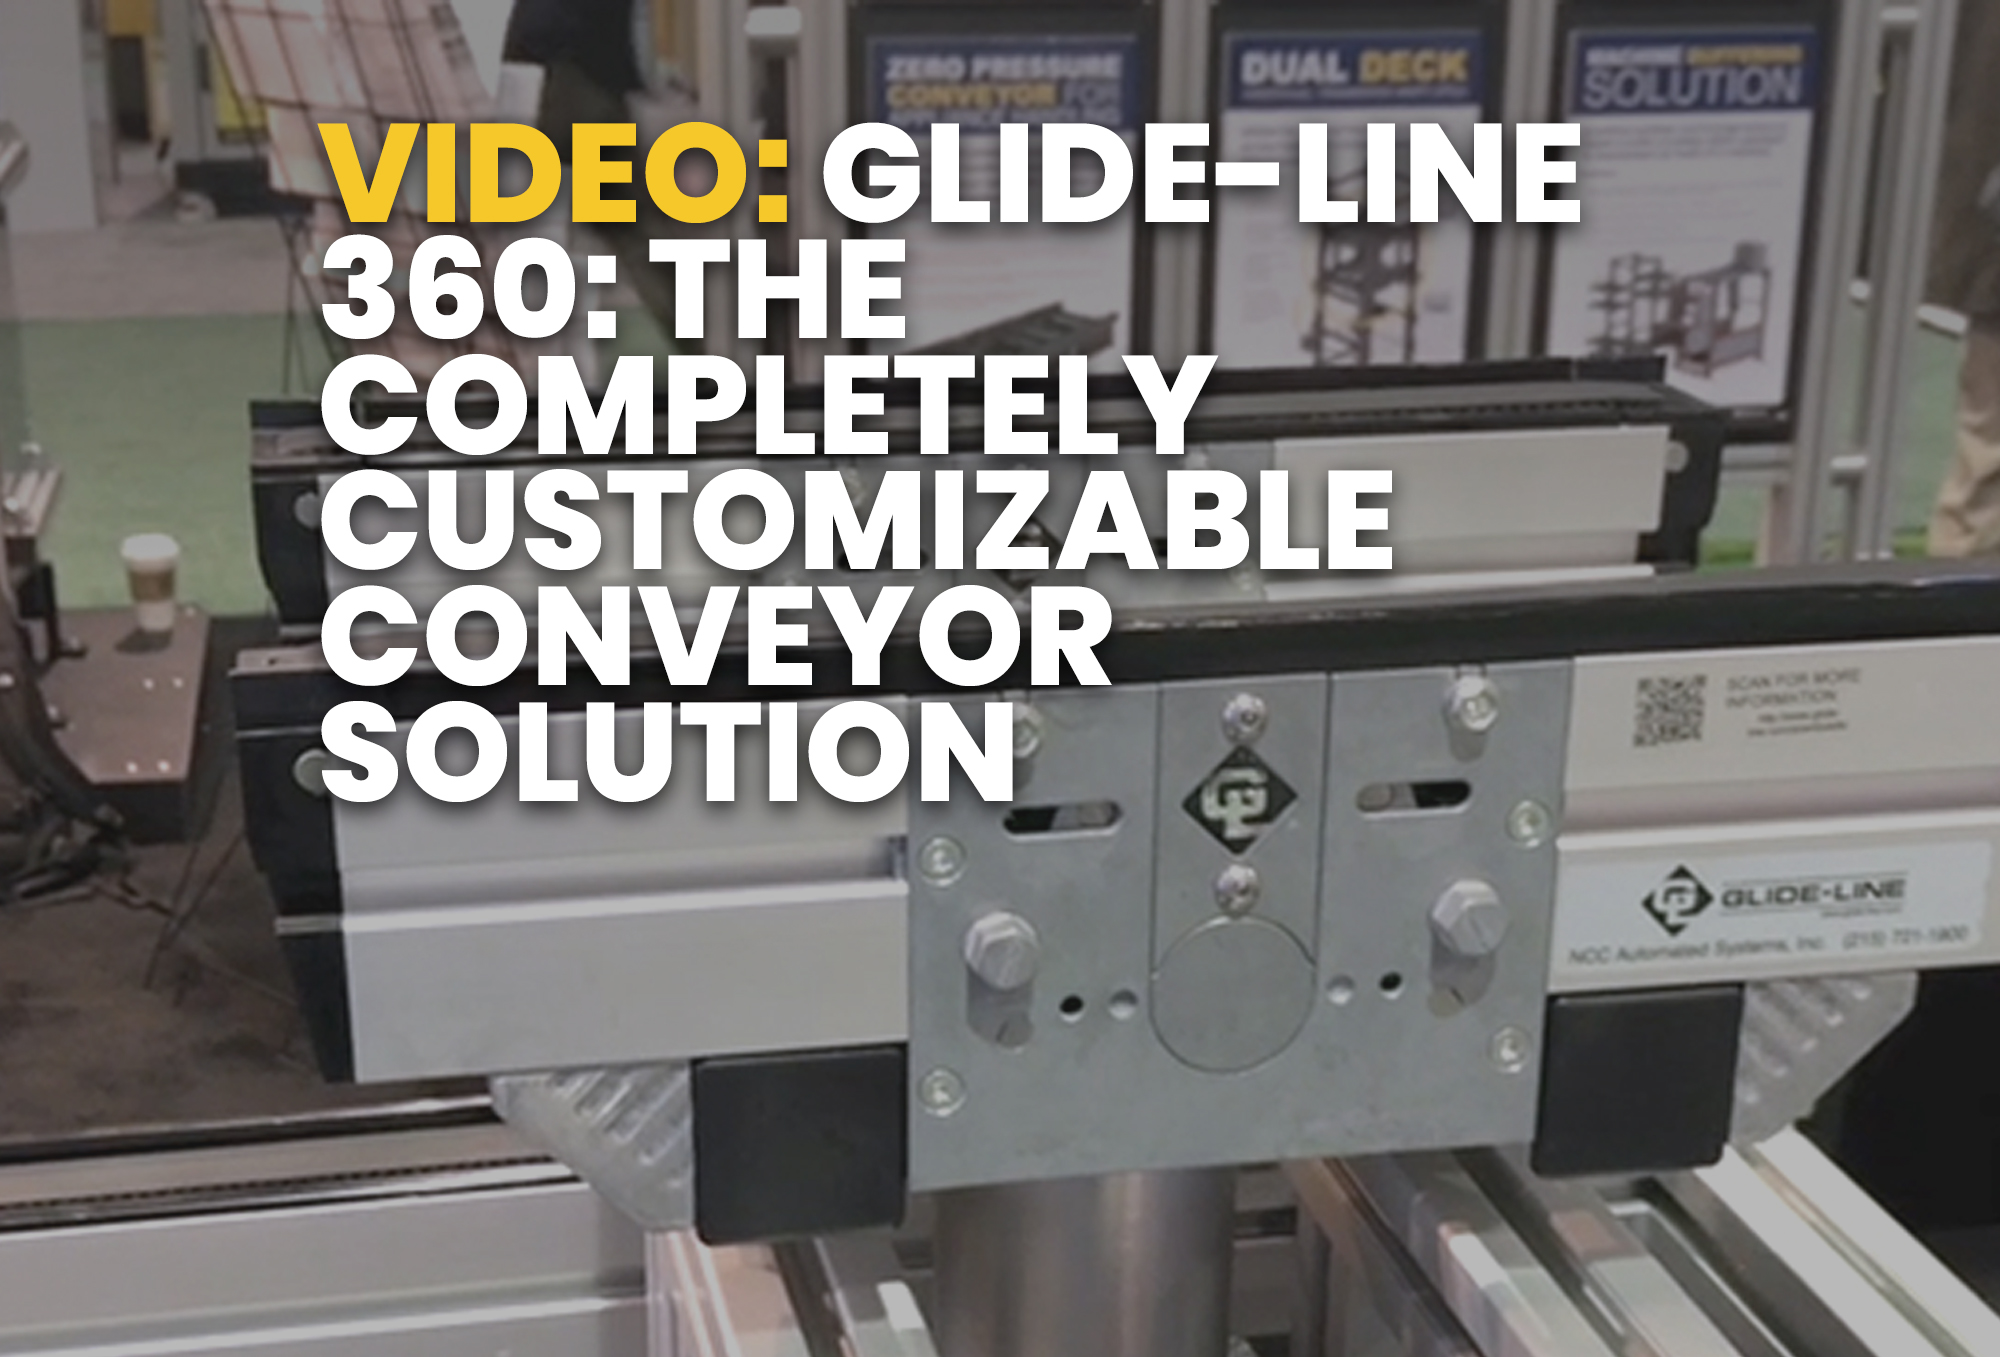 Glide-Line 360- The Completely Customizable Conveyor Solution - Resource